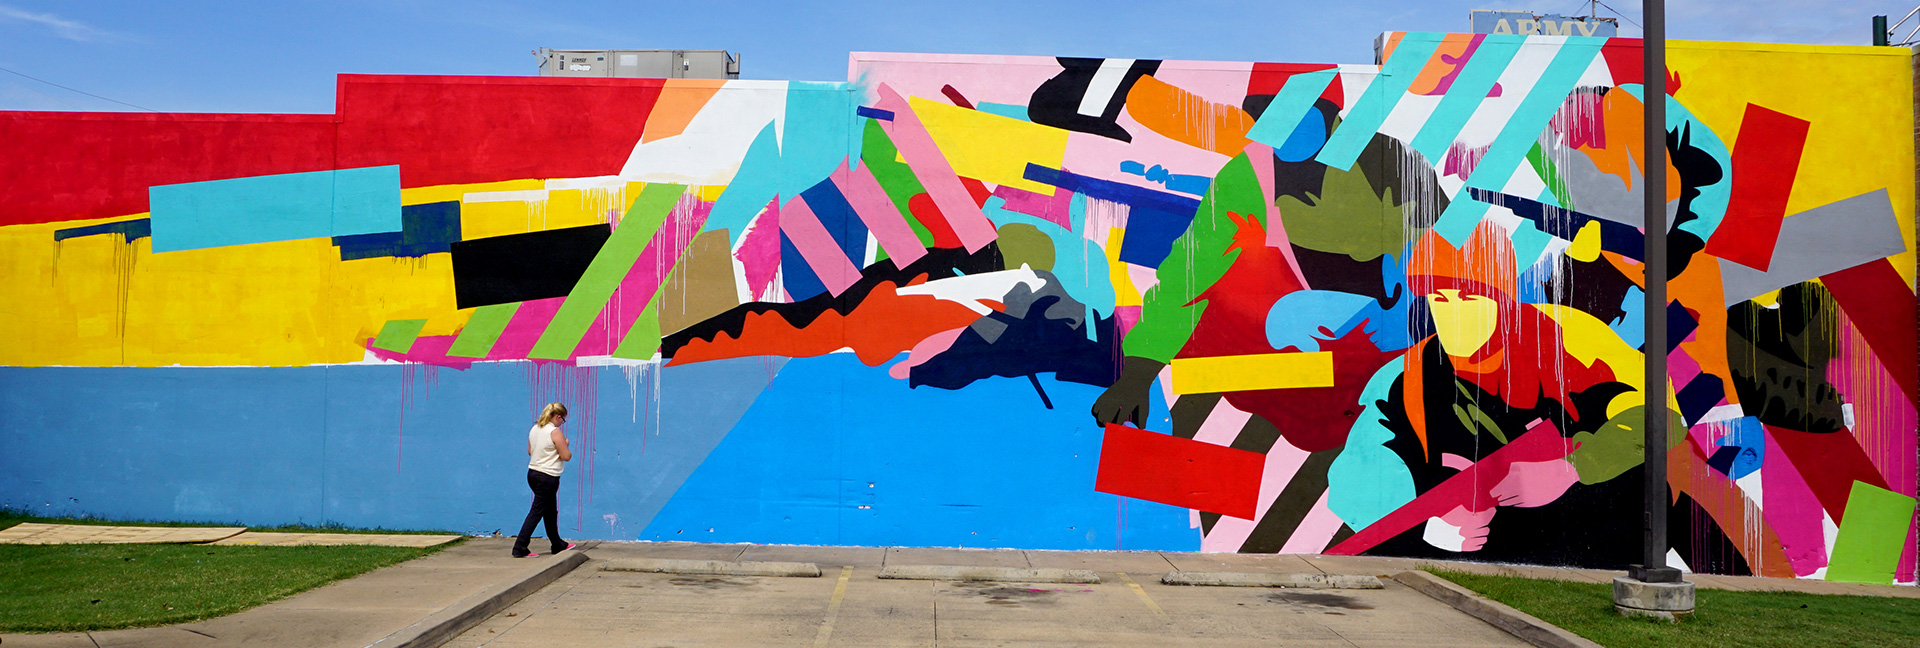 The Art Conference, artwork by Maser | Art-Pie